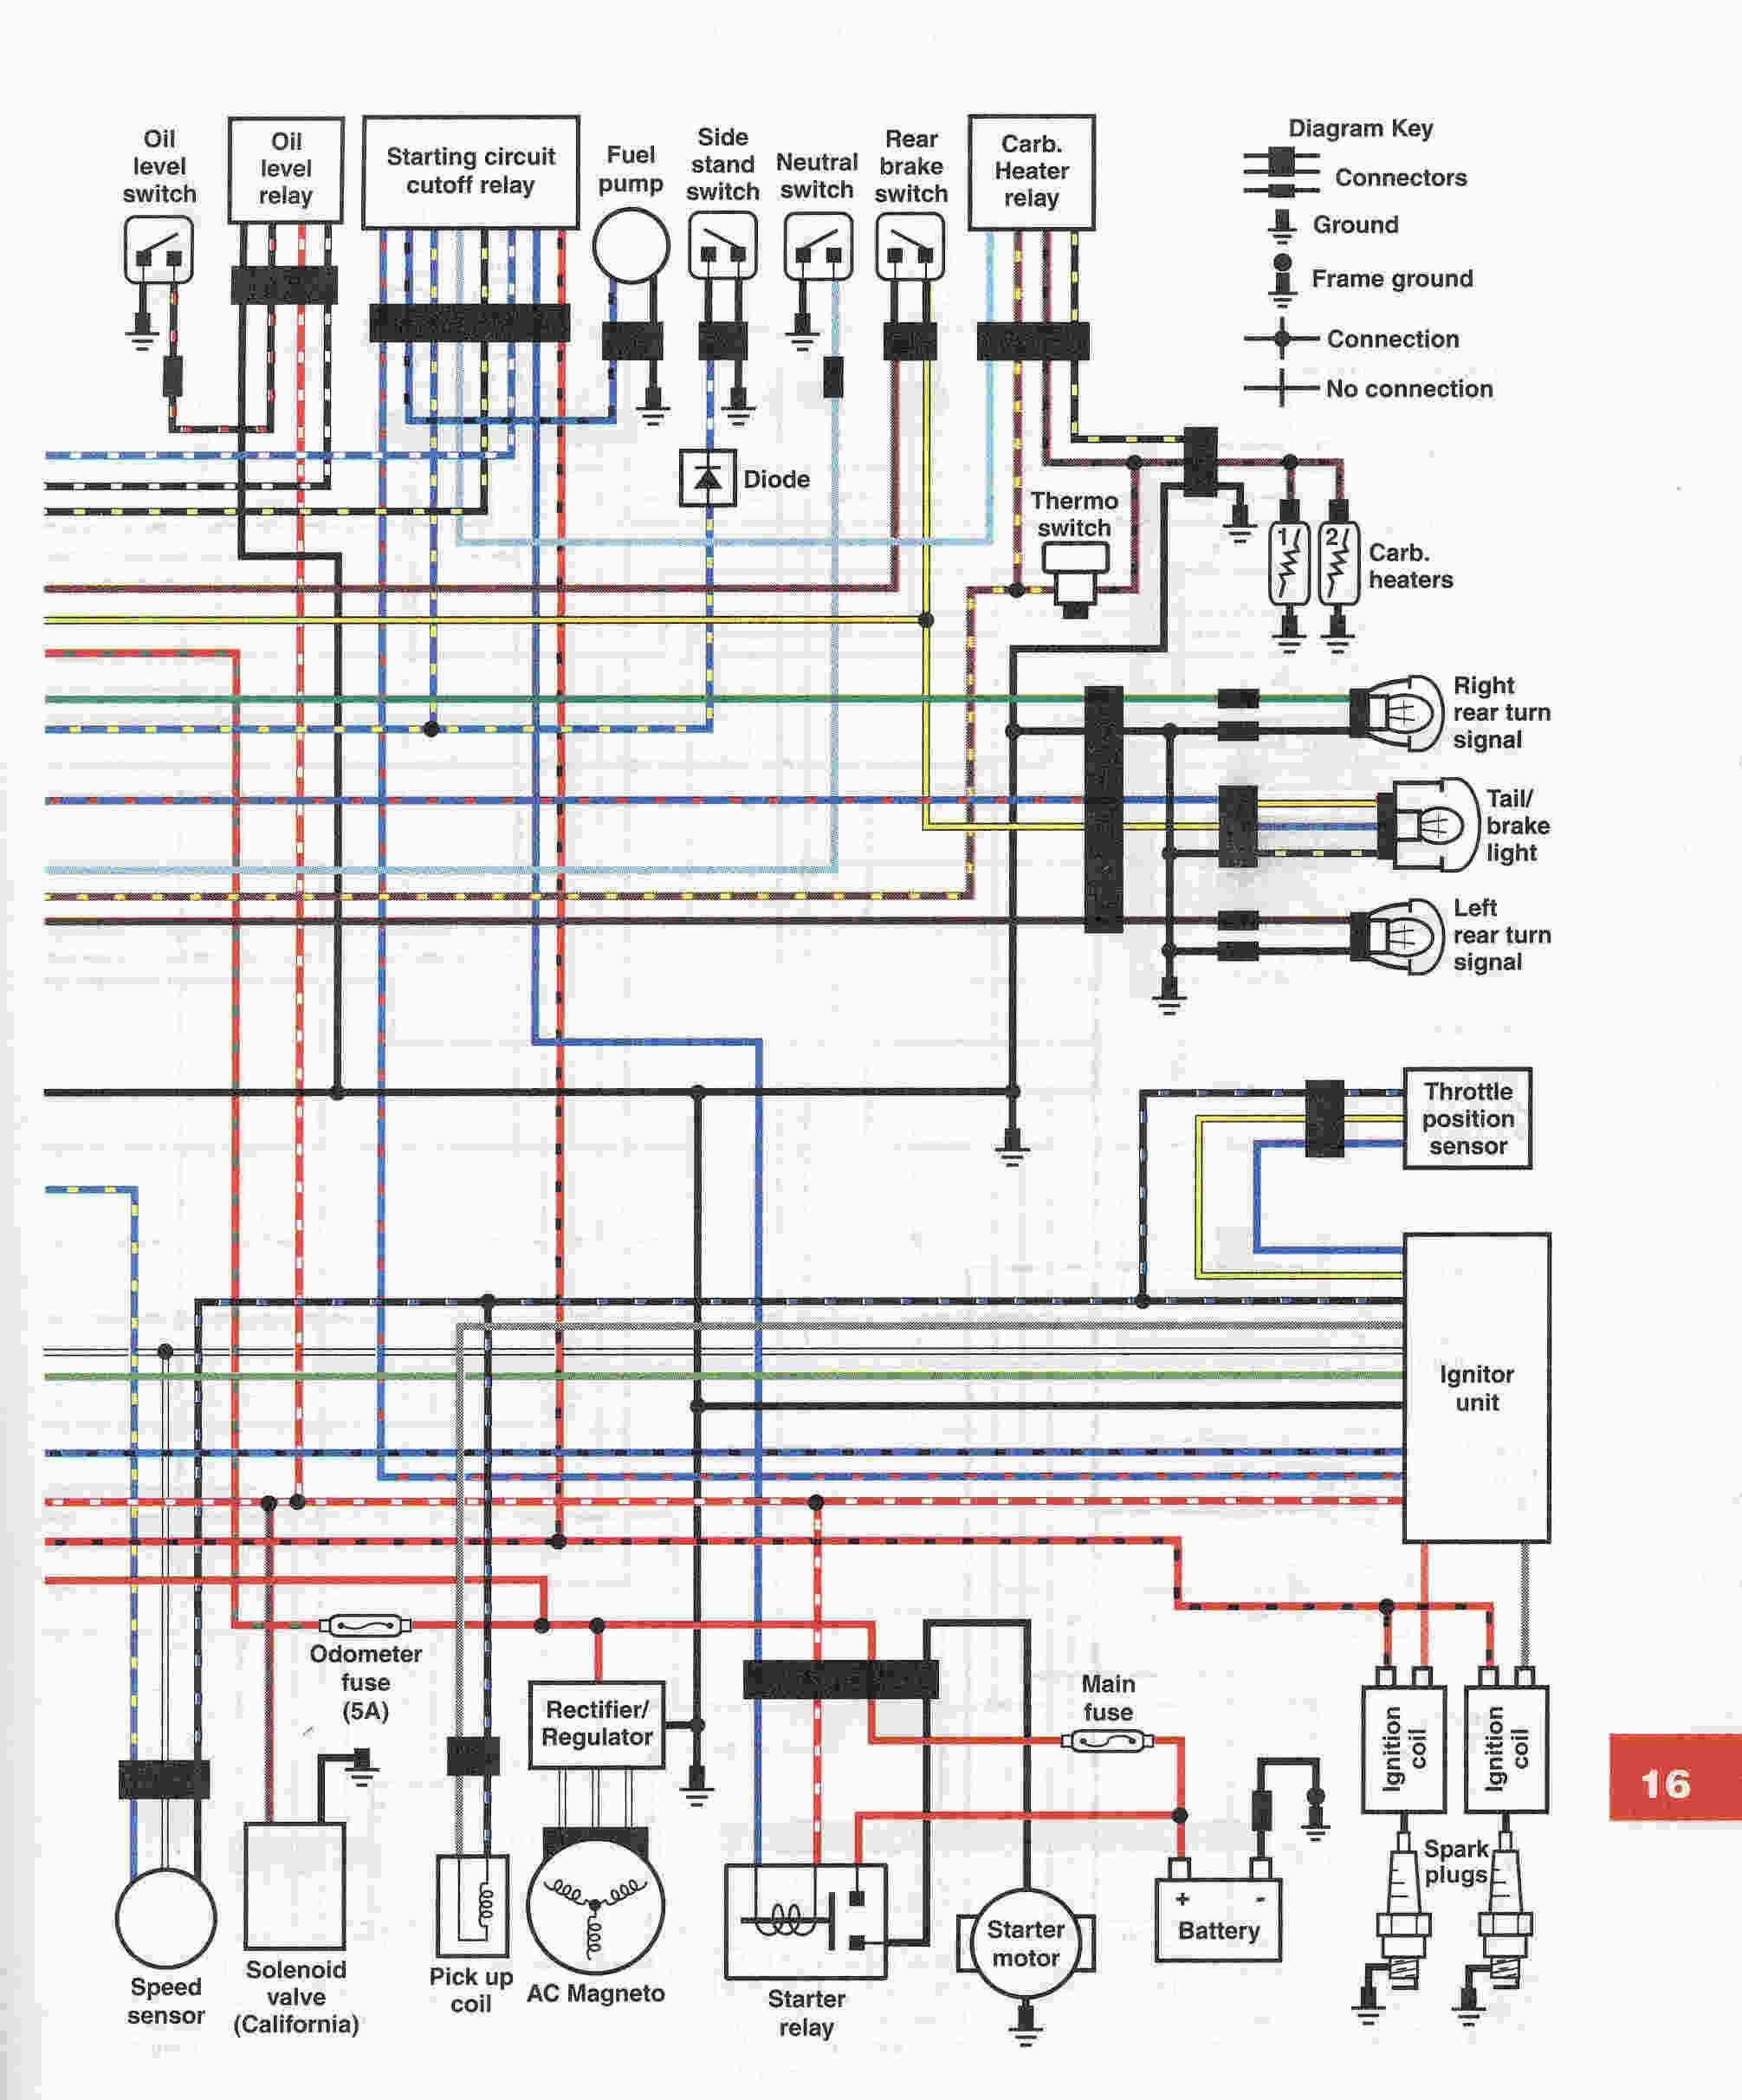 wiring diagram yamaha 125zr free download wiring diagram xwiaw ez rh xwiaw us Yamaha Outboard Wiring Diagram Yamaha Outboard Wiring Diagram